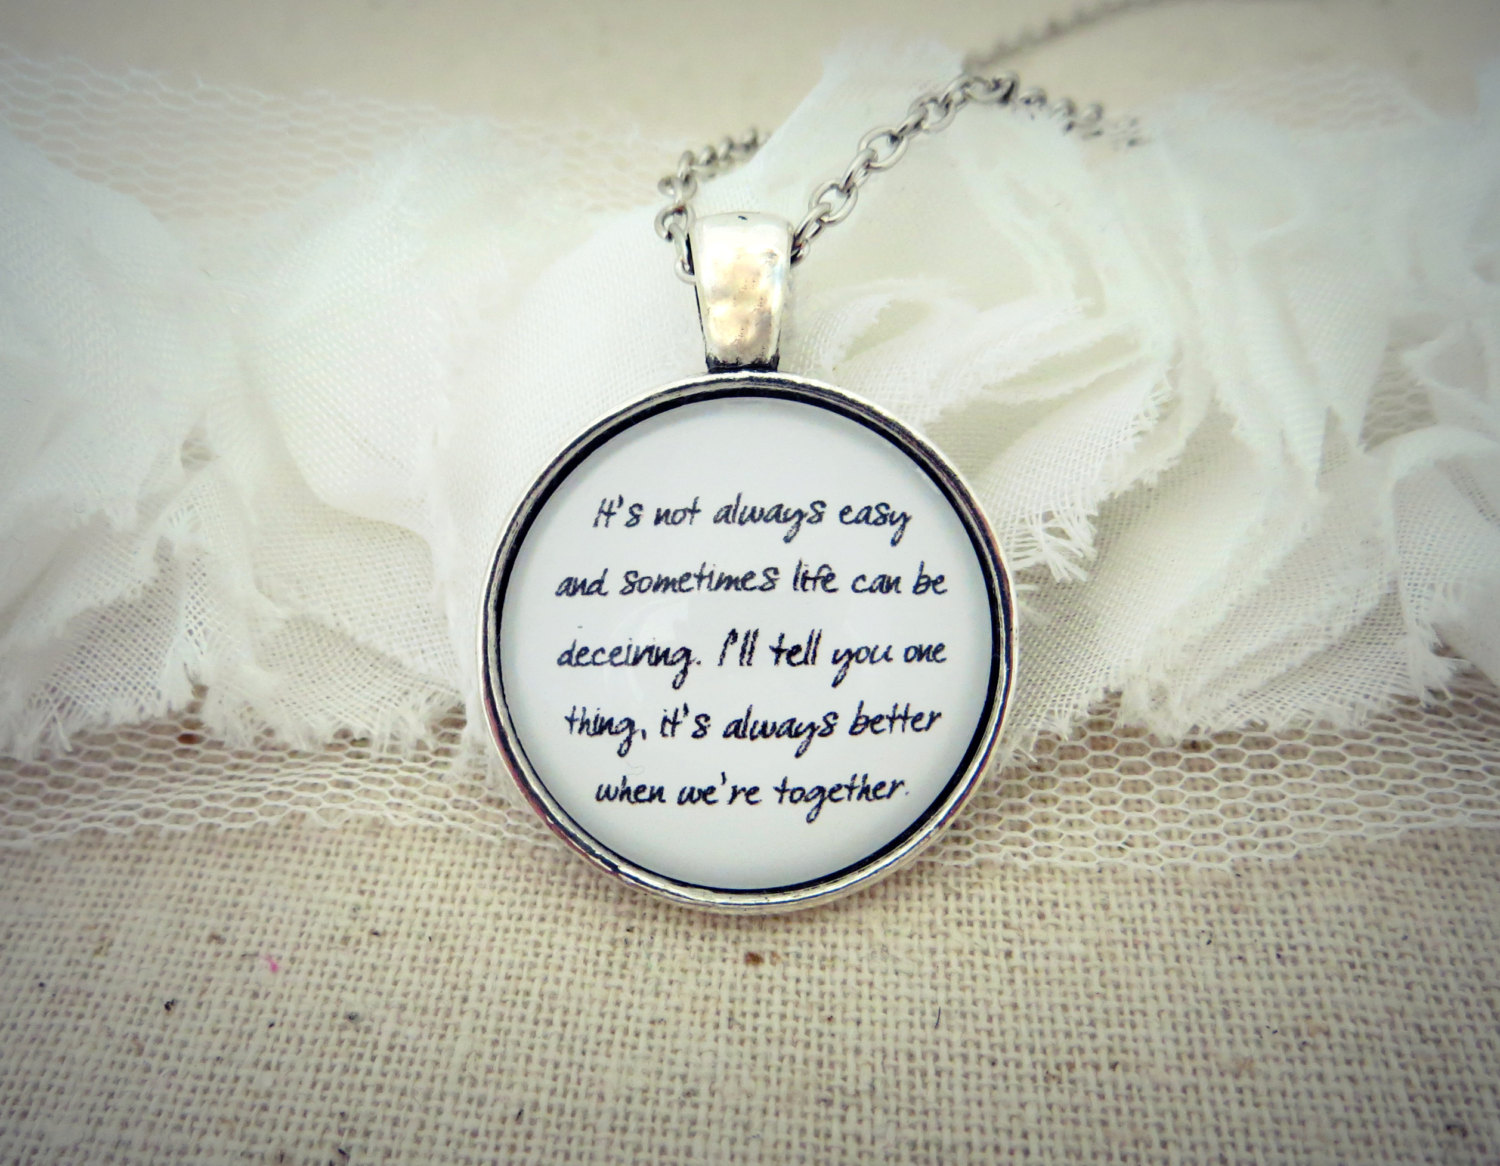 It S Always Better When Were Together Handcrafted Pendant Necklace 18 Inches Sold By Indieetc On Storenvy